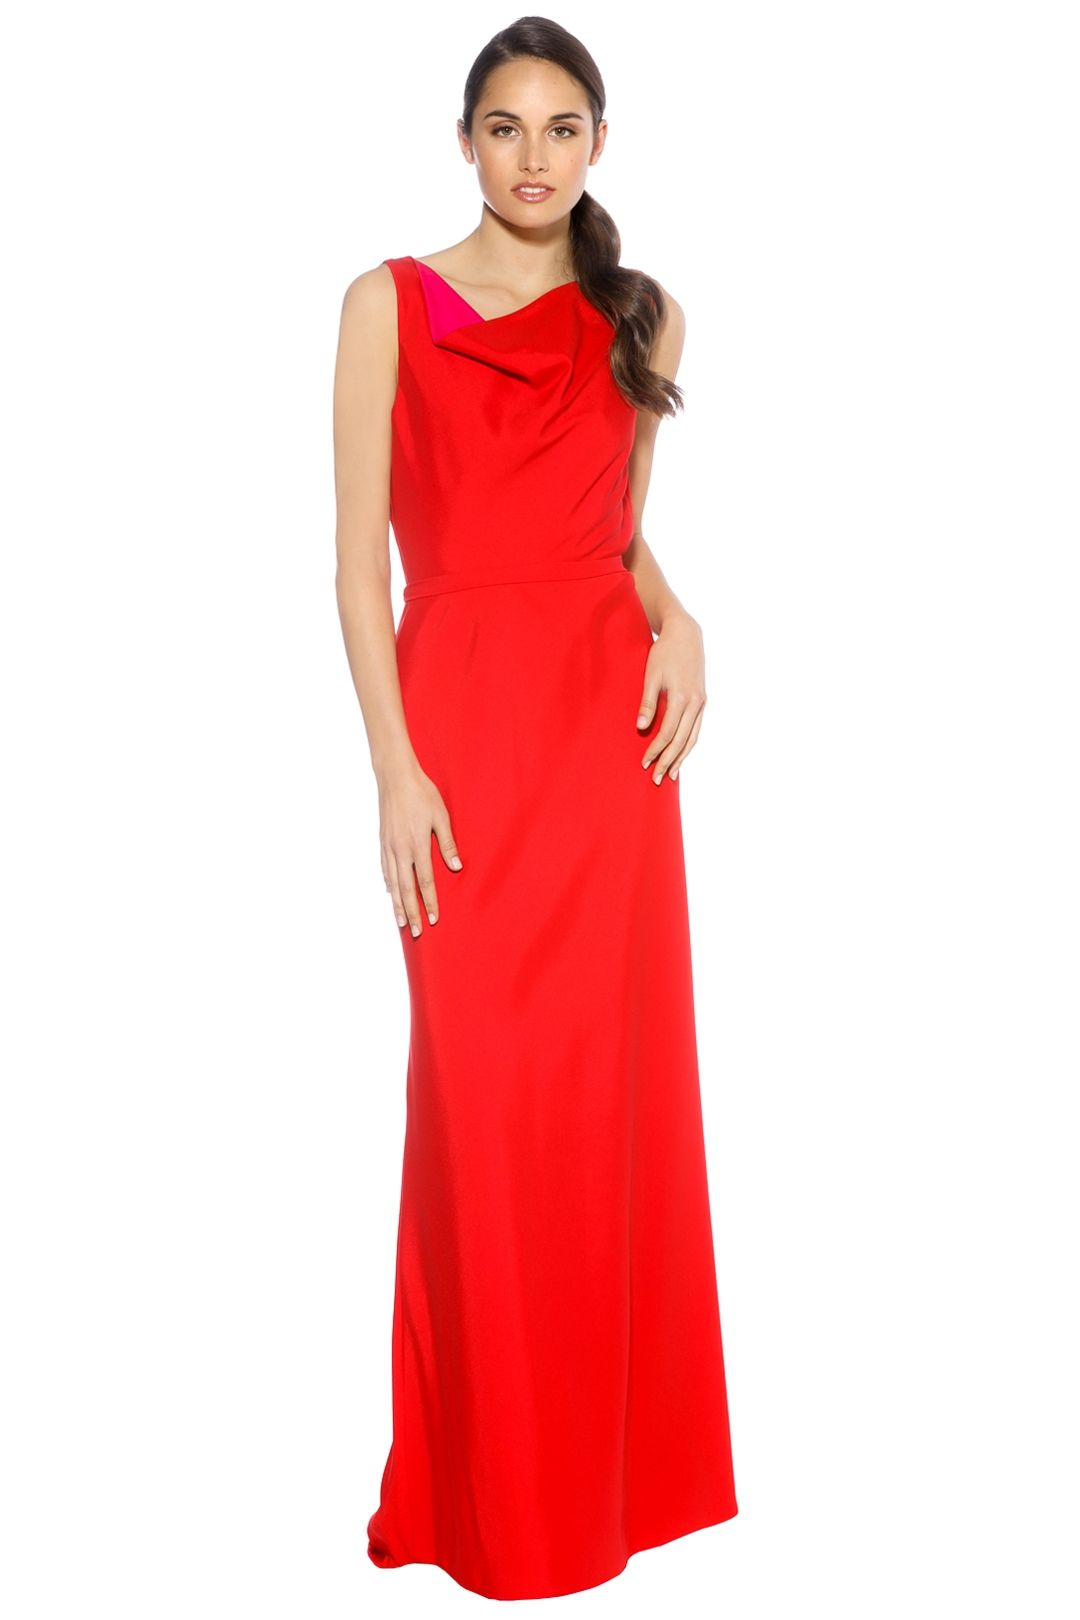 LUOM.O - Paloma Dress - Red - Front